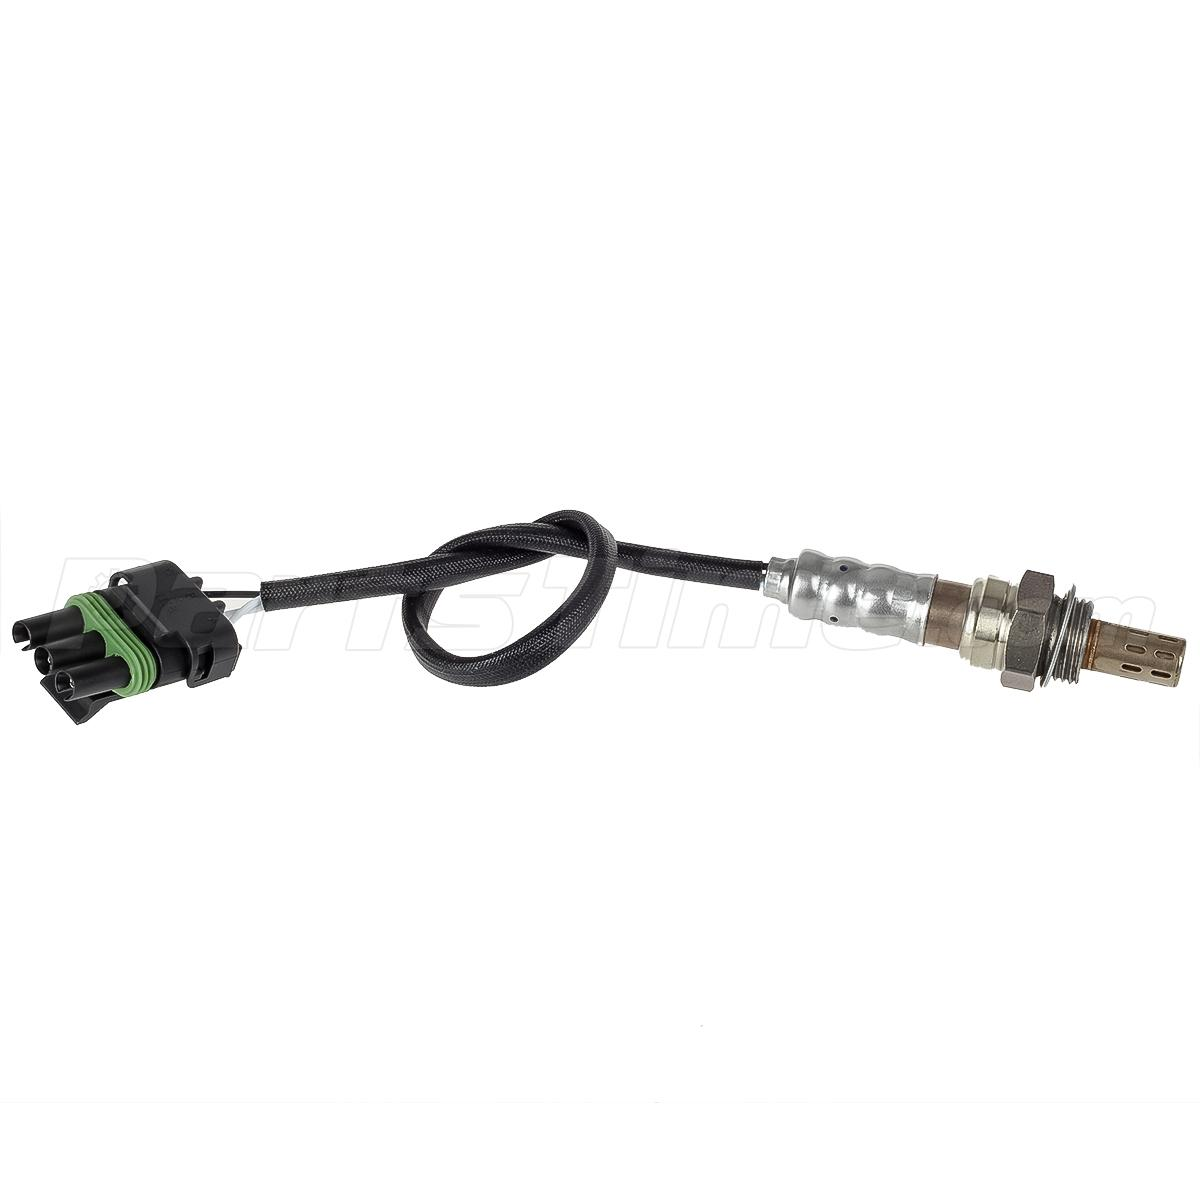 Upstream Oxygen Sensor For 92 93 Chevrolet Caprice G10 G20